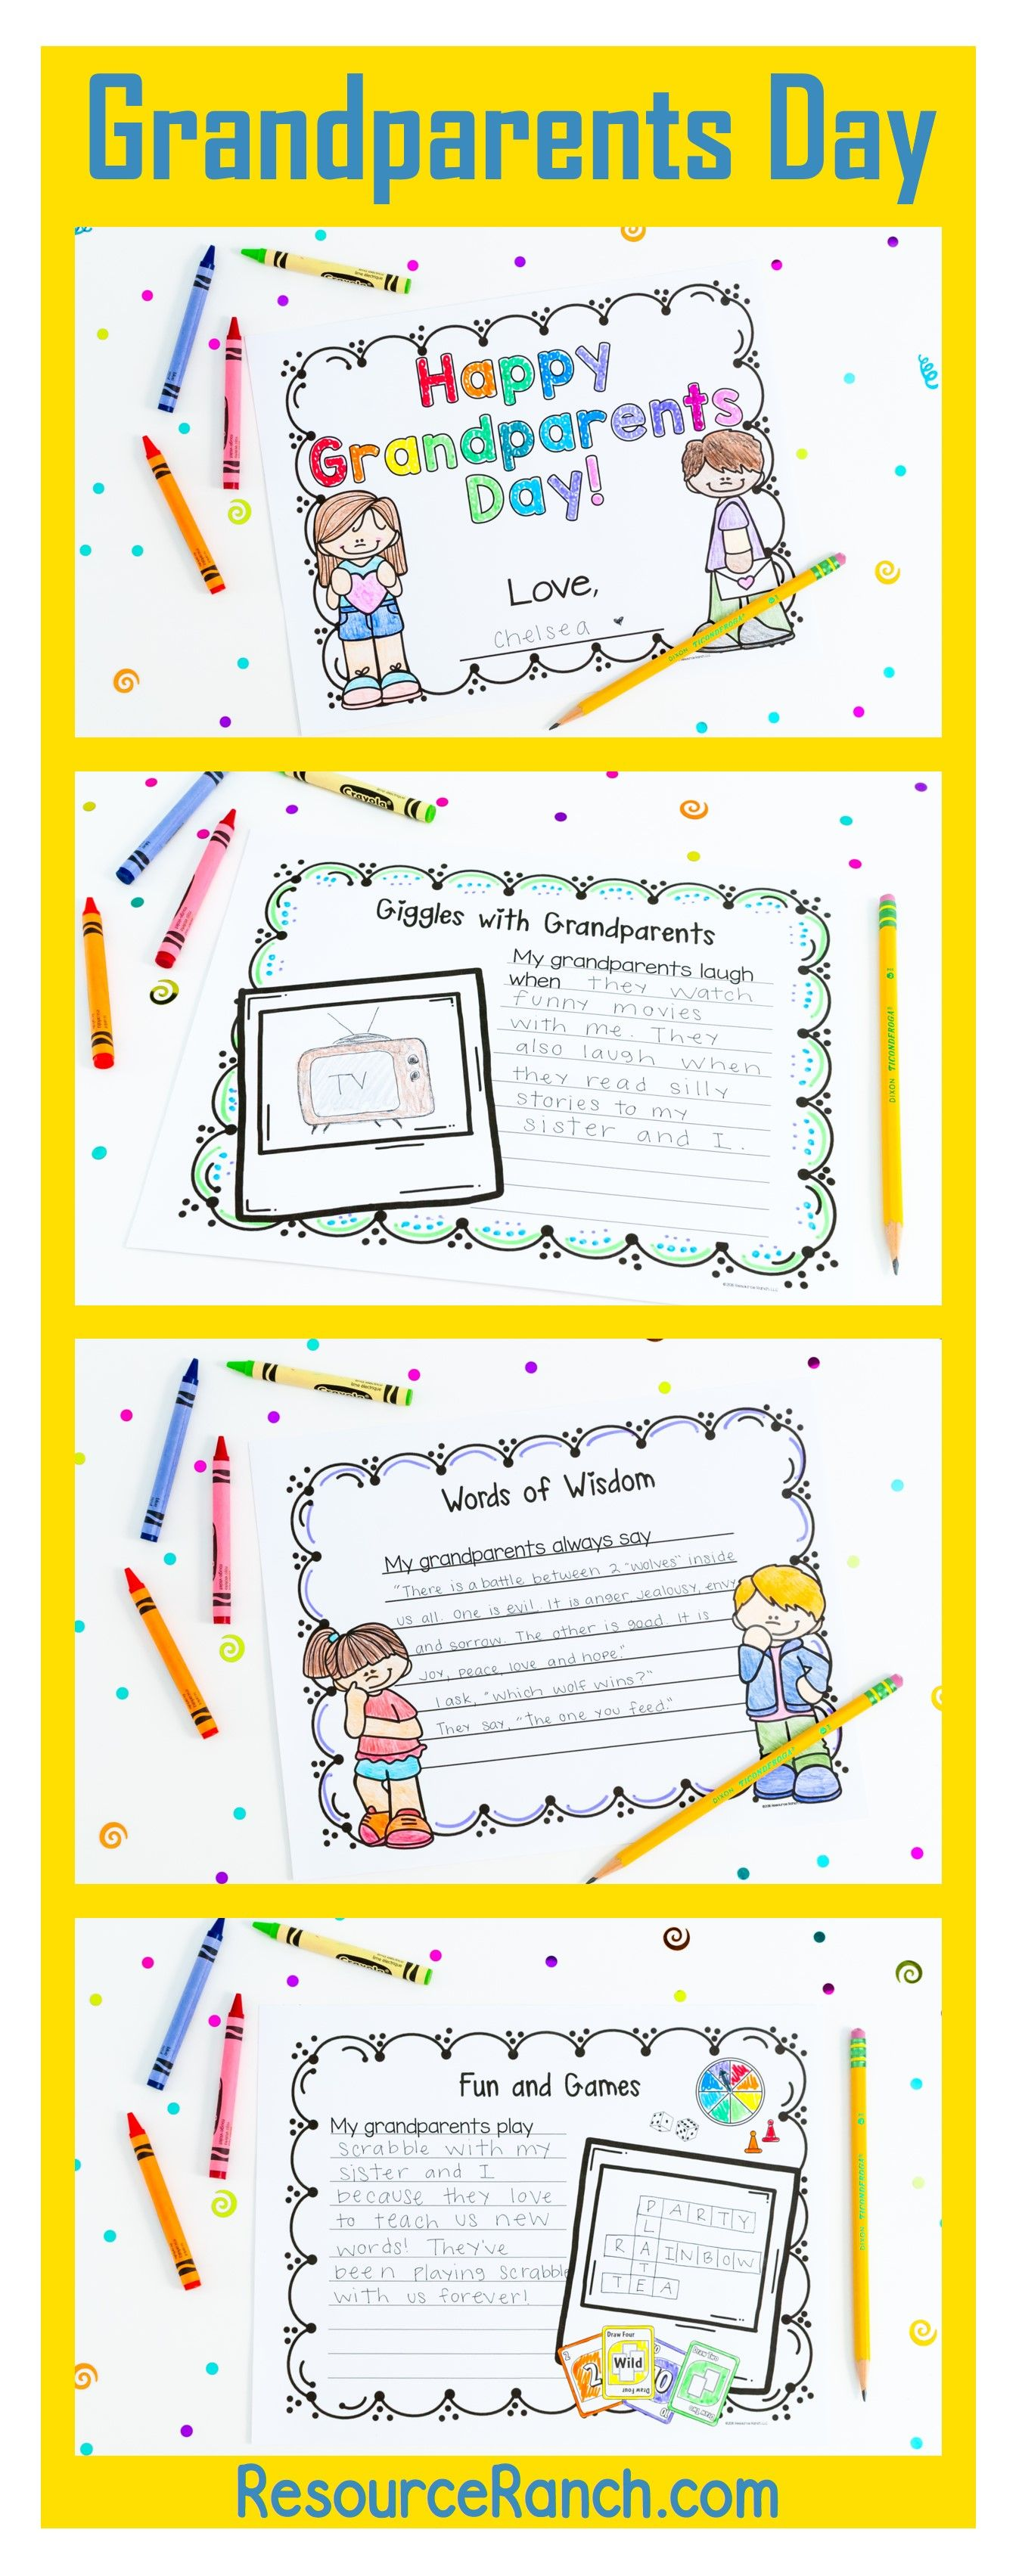 This Grandparents Day Resource Contains Three Separate But